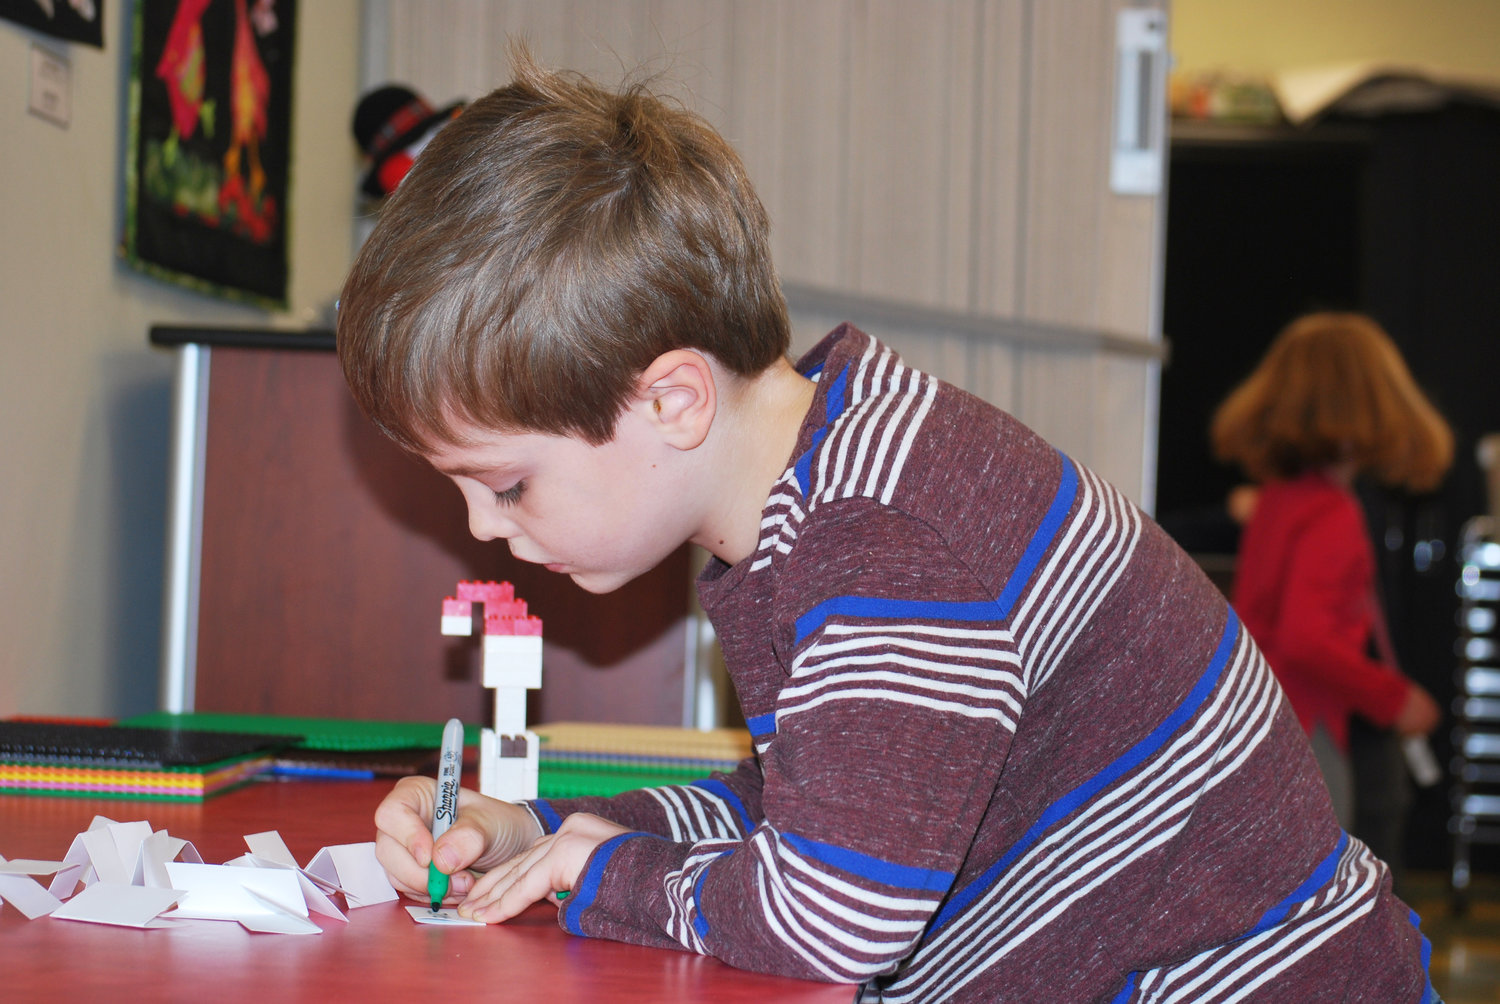 Jamie Wilson signing his name on his Snowman for the lego challenge